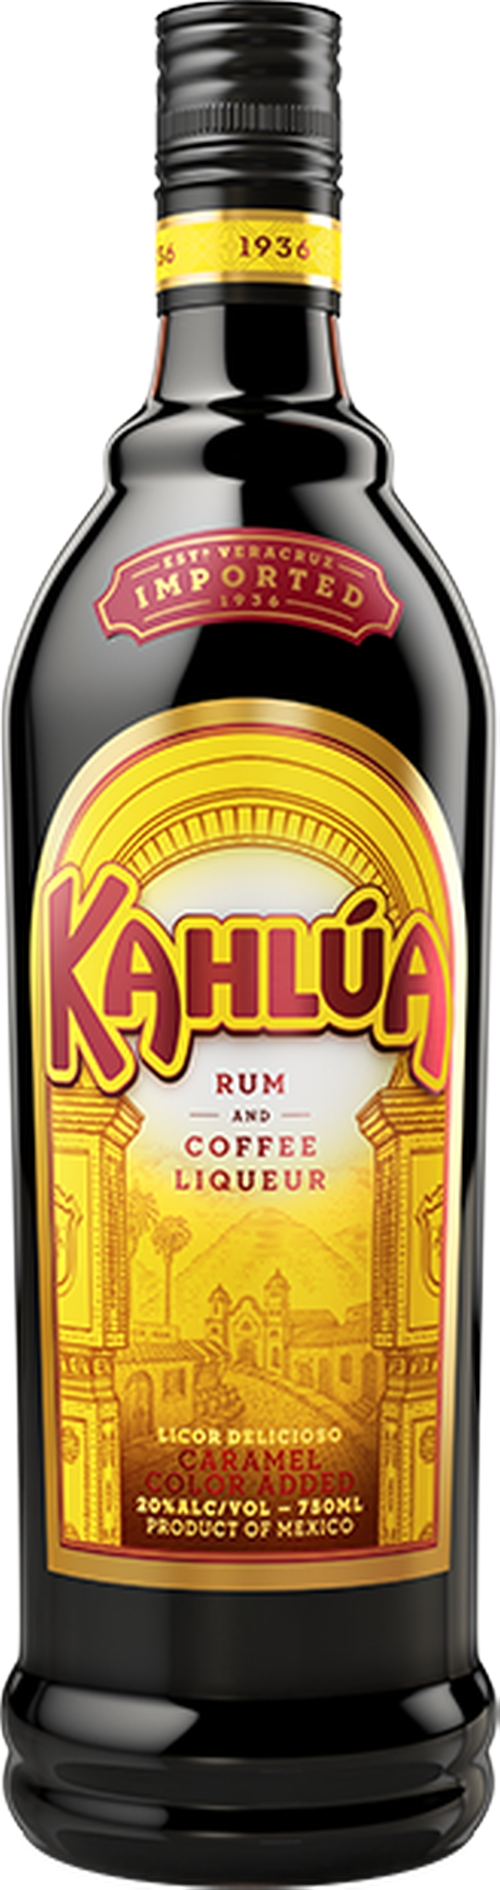 Original Rum and Coffee Liqueur by Kahlua in The Big Lebowski